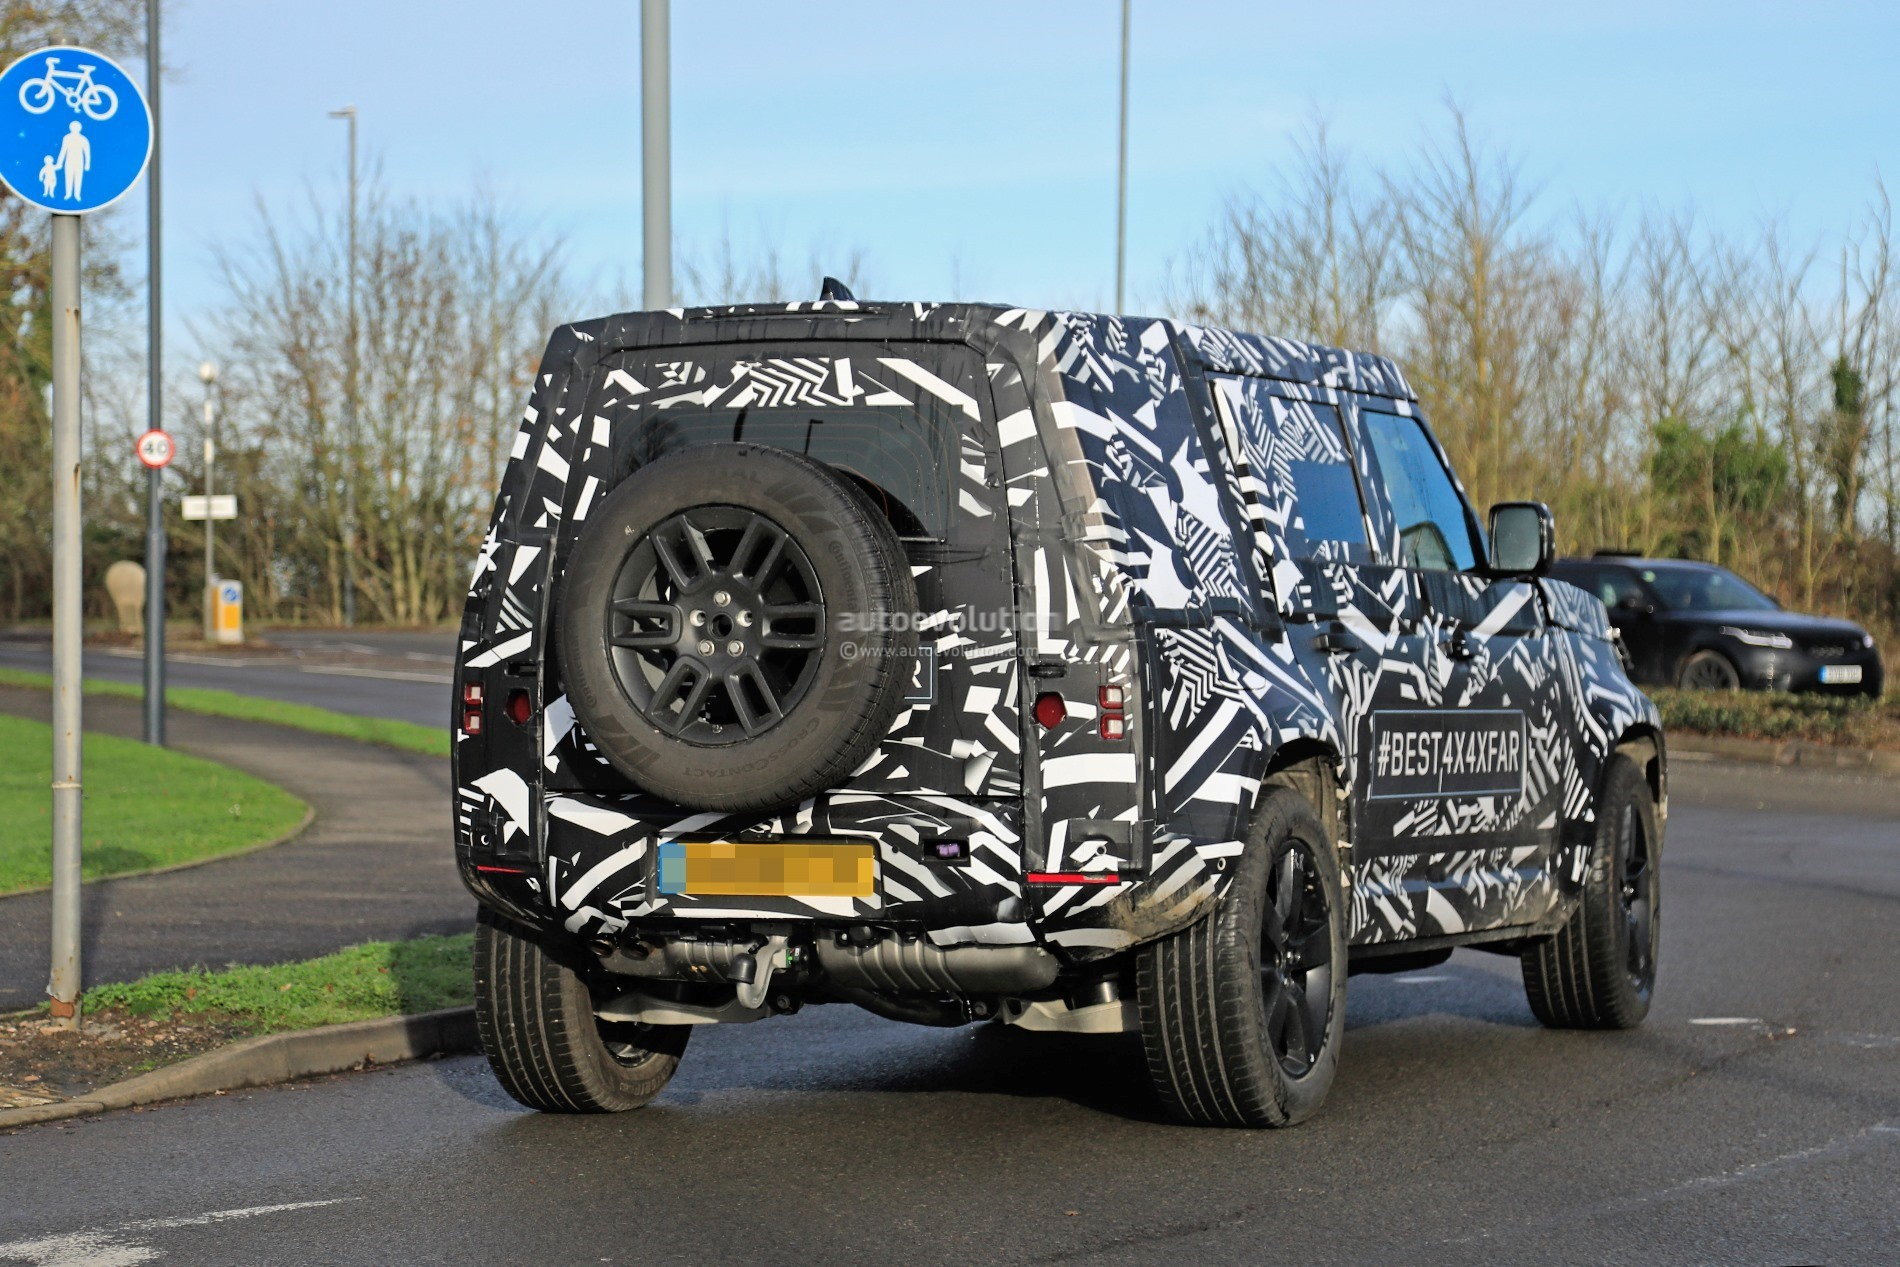 Square Body Car >> 2020 Land Rover Defender Spied, Transitions To Unibody Construction - autoevolution